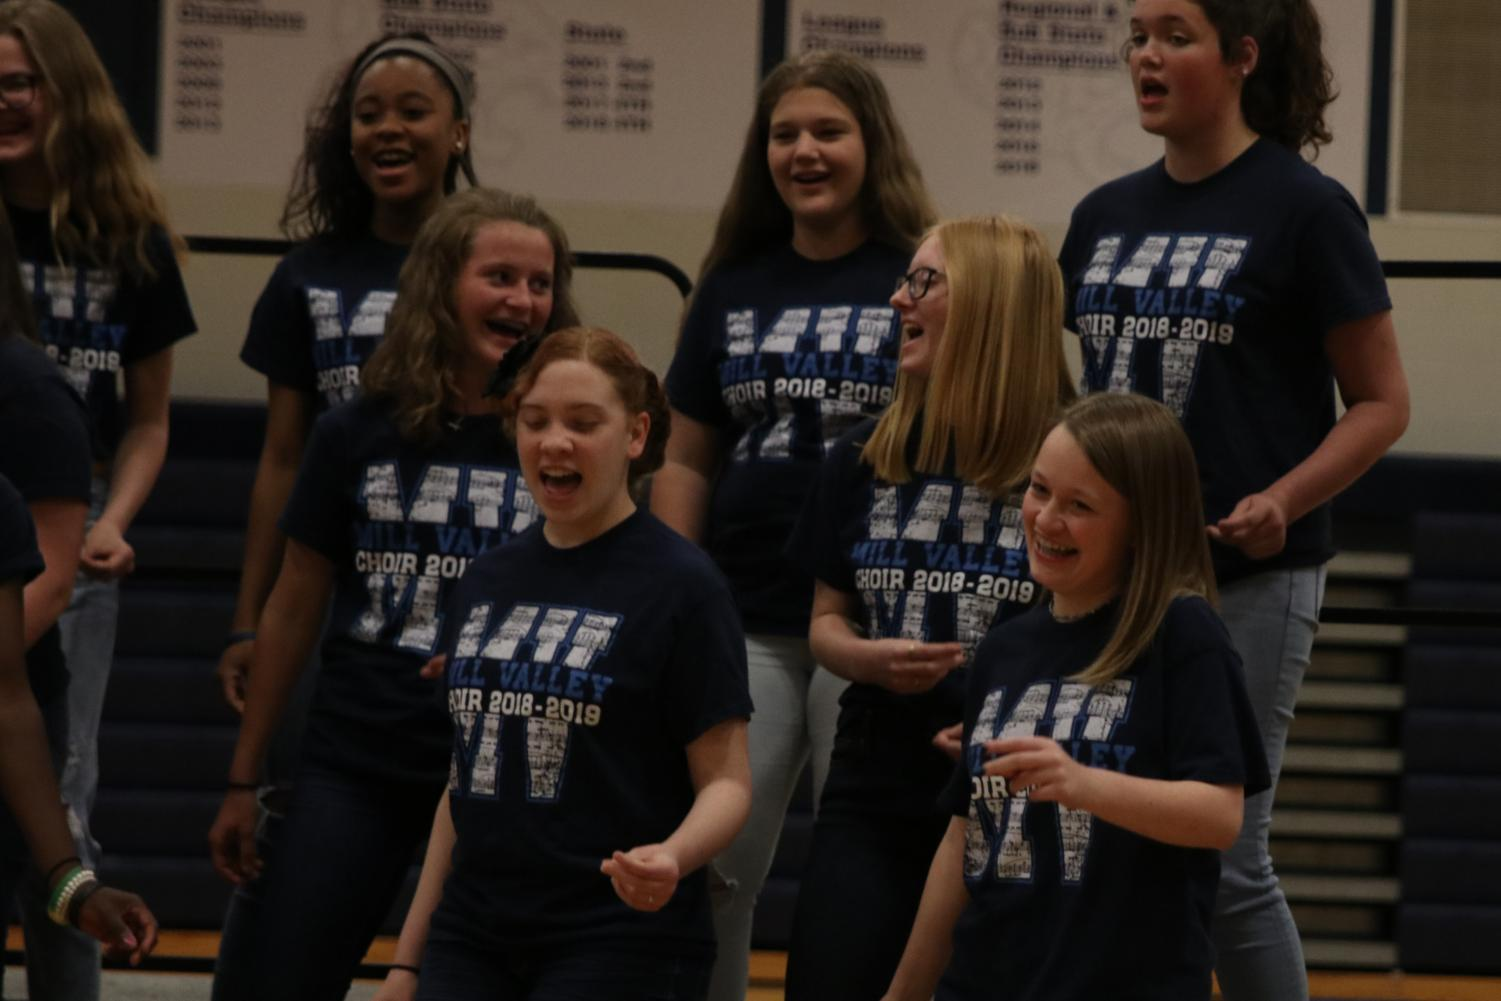 Sophomore+Avery+Hansford+and+members+of+the+treble+choir+snap+their+fingers+to+%E2%80%9CSeasons+of+Love%E2%80%9D+from+the+musical+%E2%80%9CRent.%E2%80%9D++